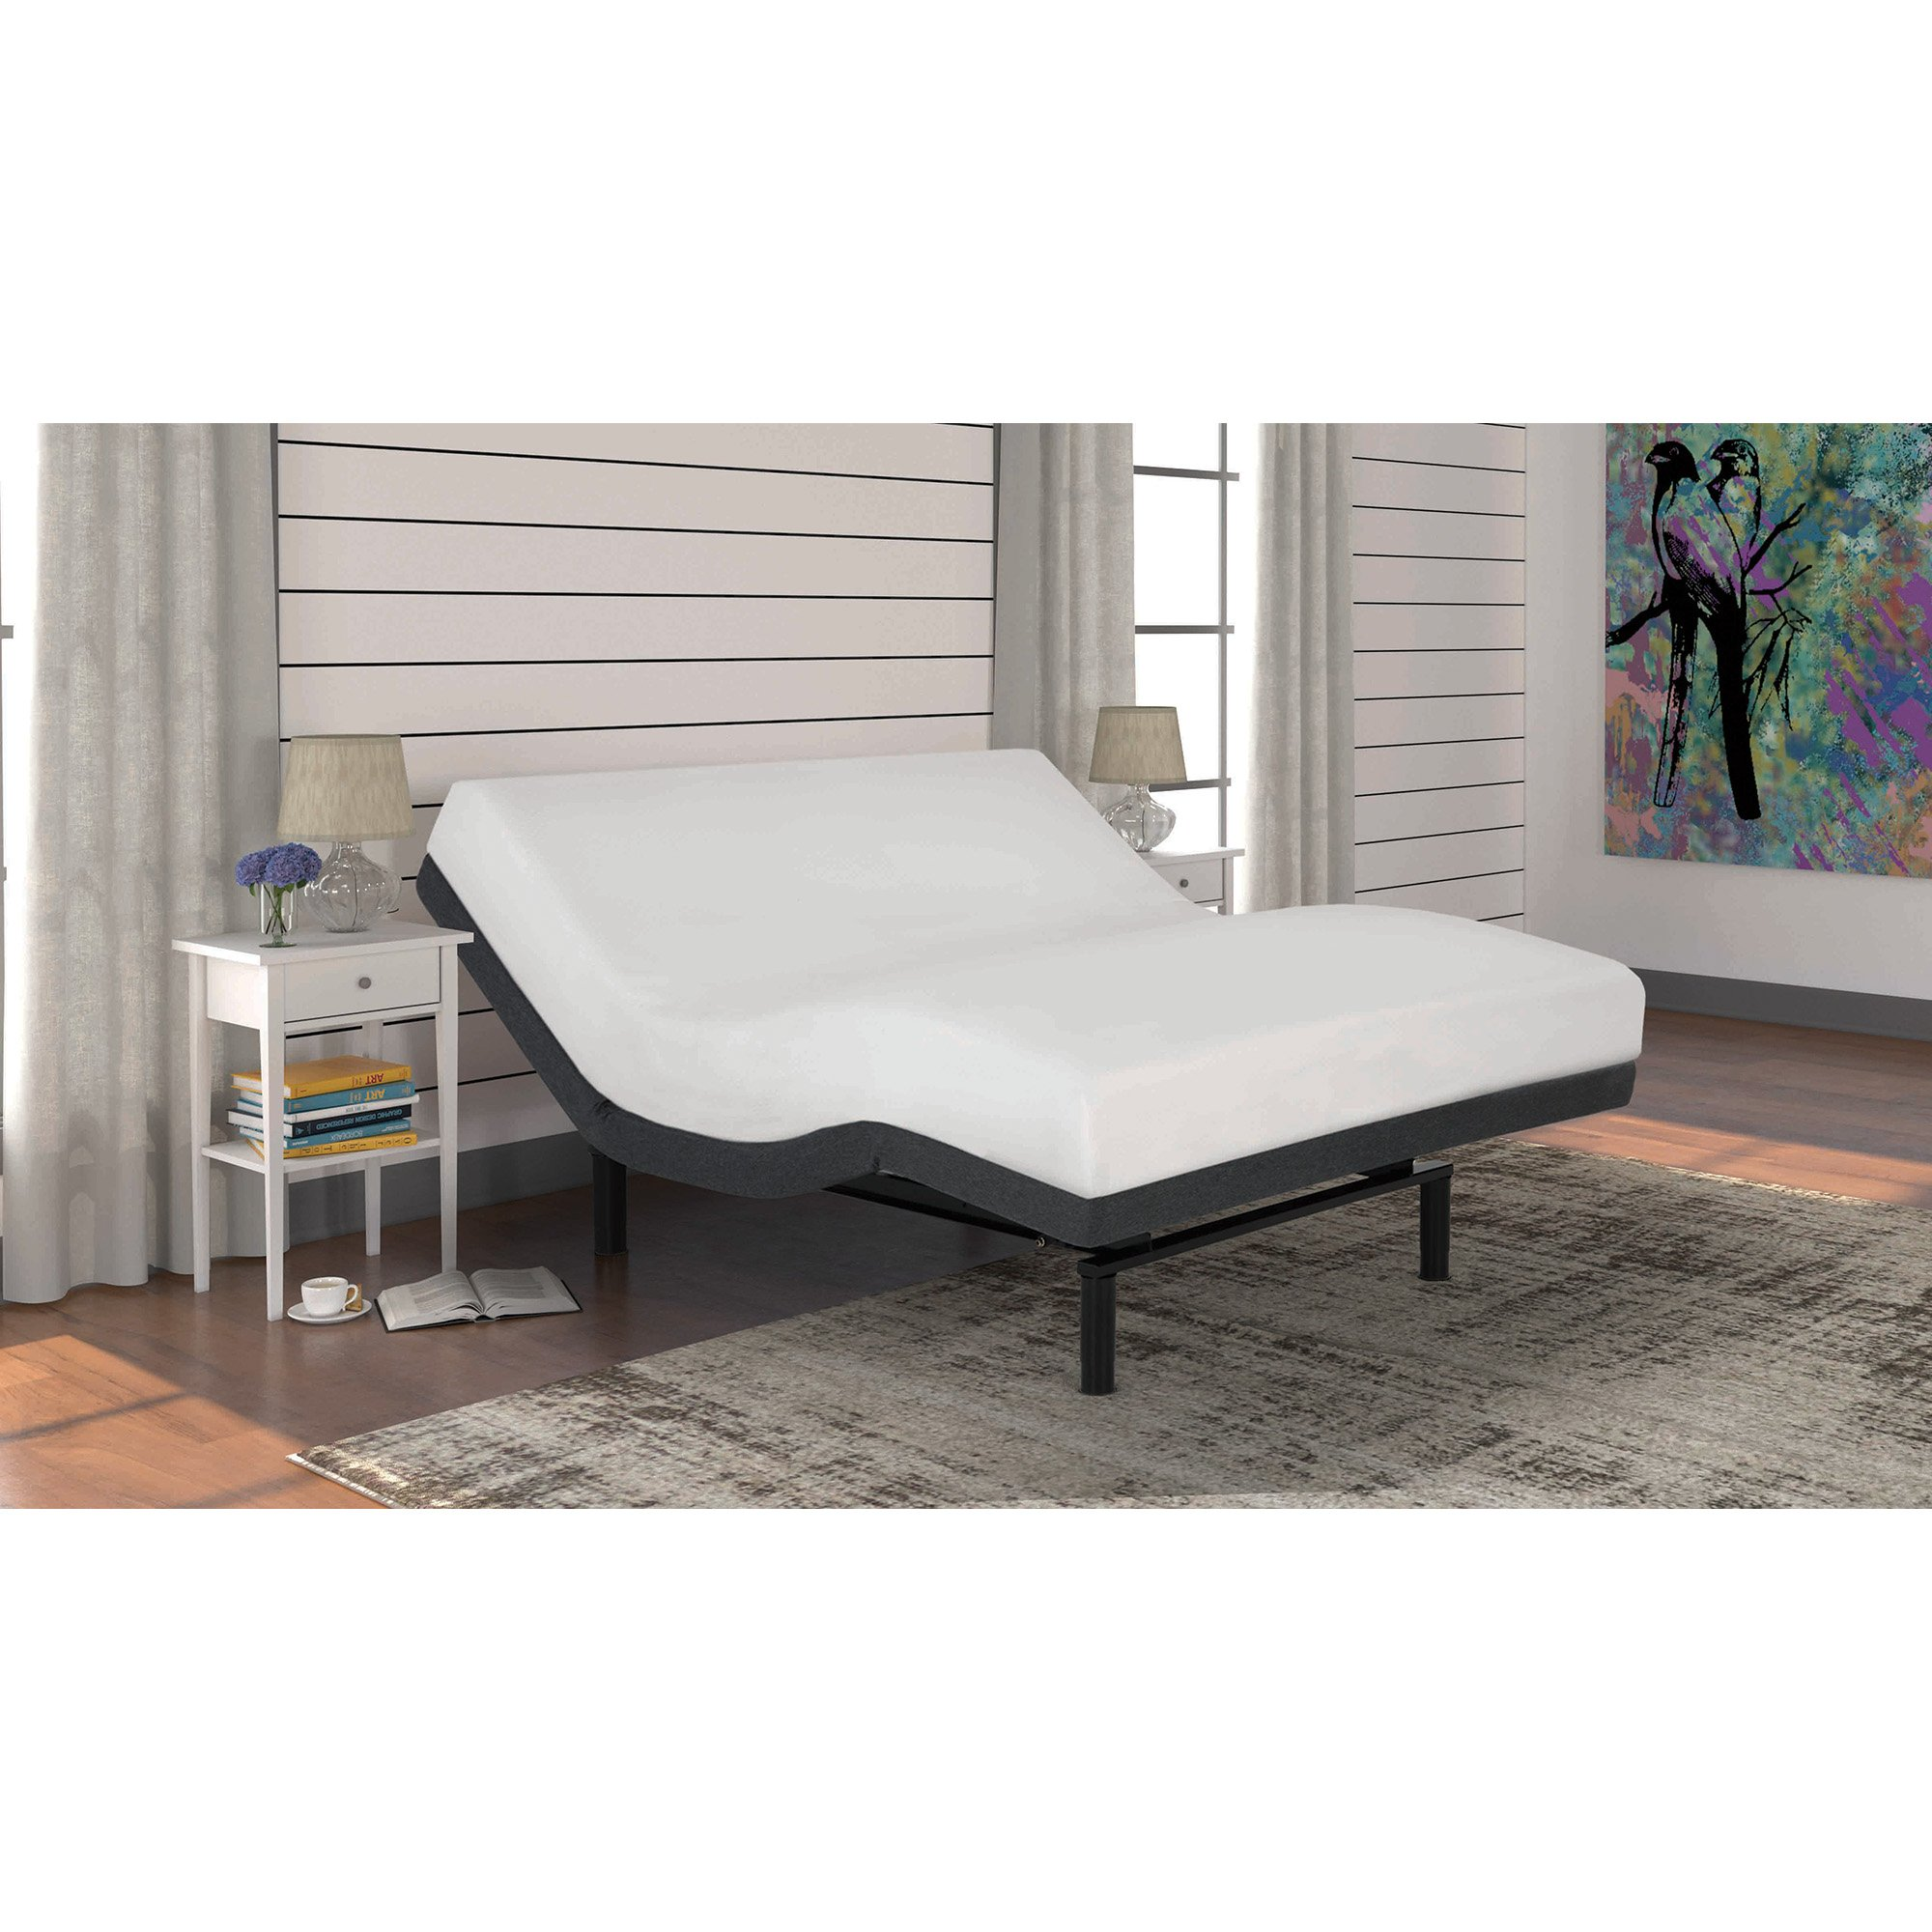 S-Cape 2.0 Adjustable Bed Base with Wallhugger Technology and Full Body Massage, Charcoal Gray Finish, Queen by Fashion Bed Group